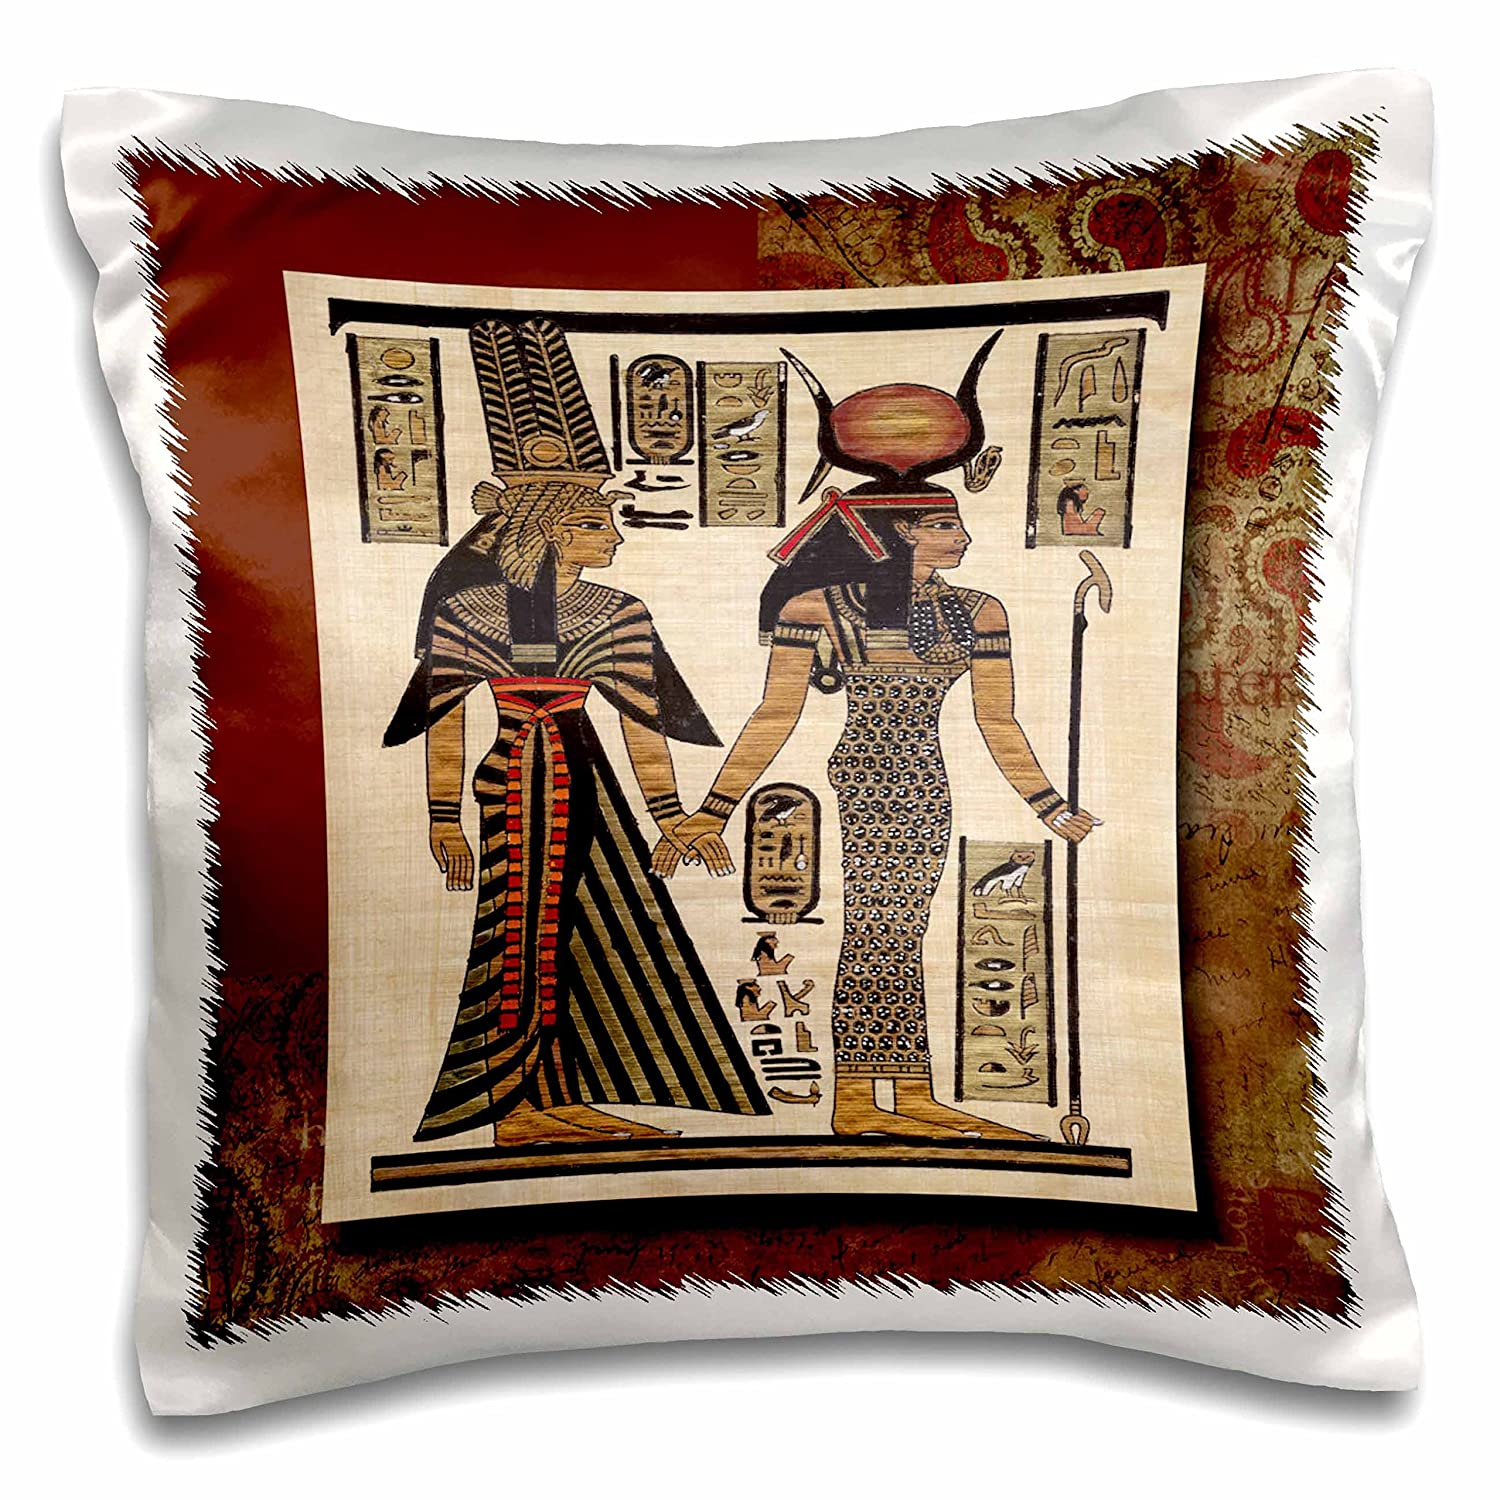 16 x 16 3D Rose pc/_99429/_1 Ancient Egyptian Papyrus Pillow Case